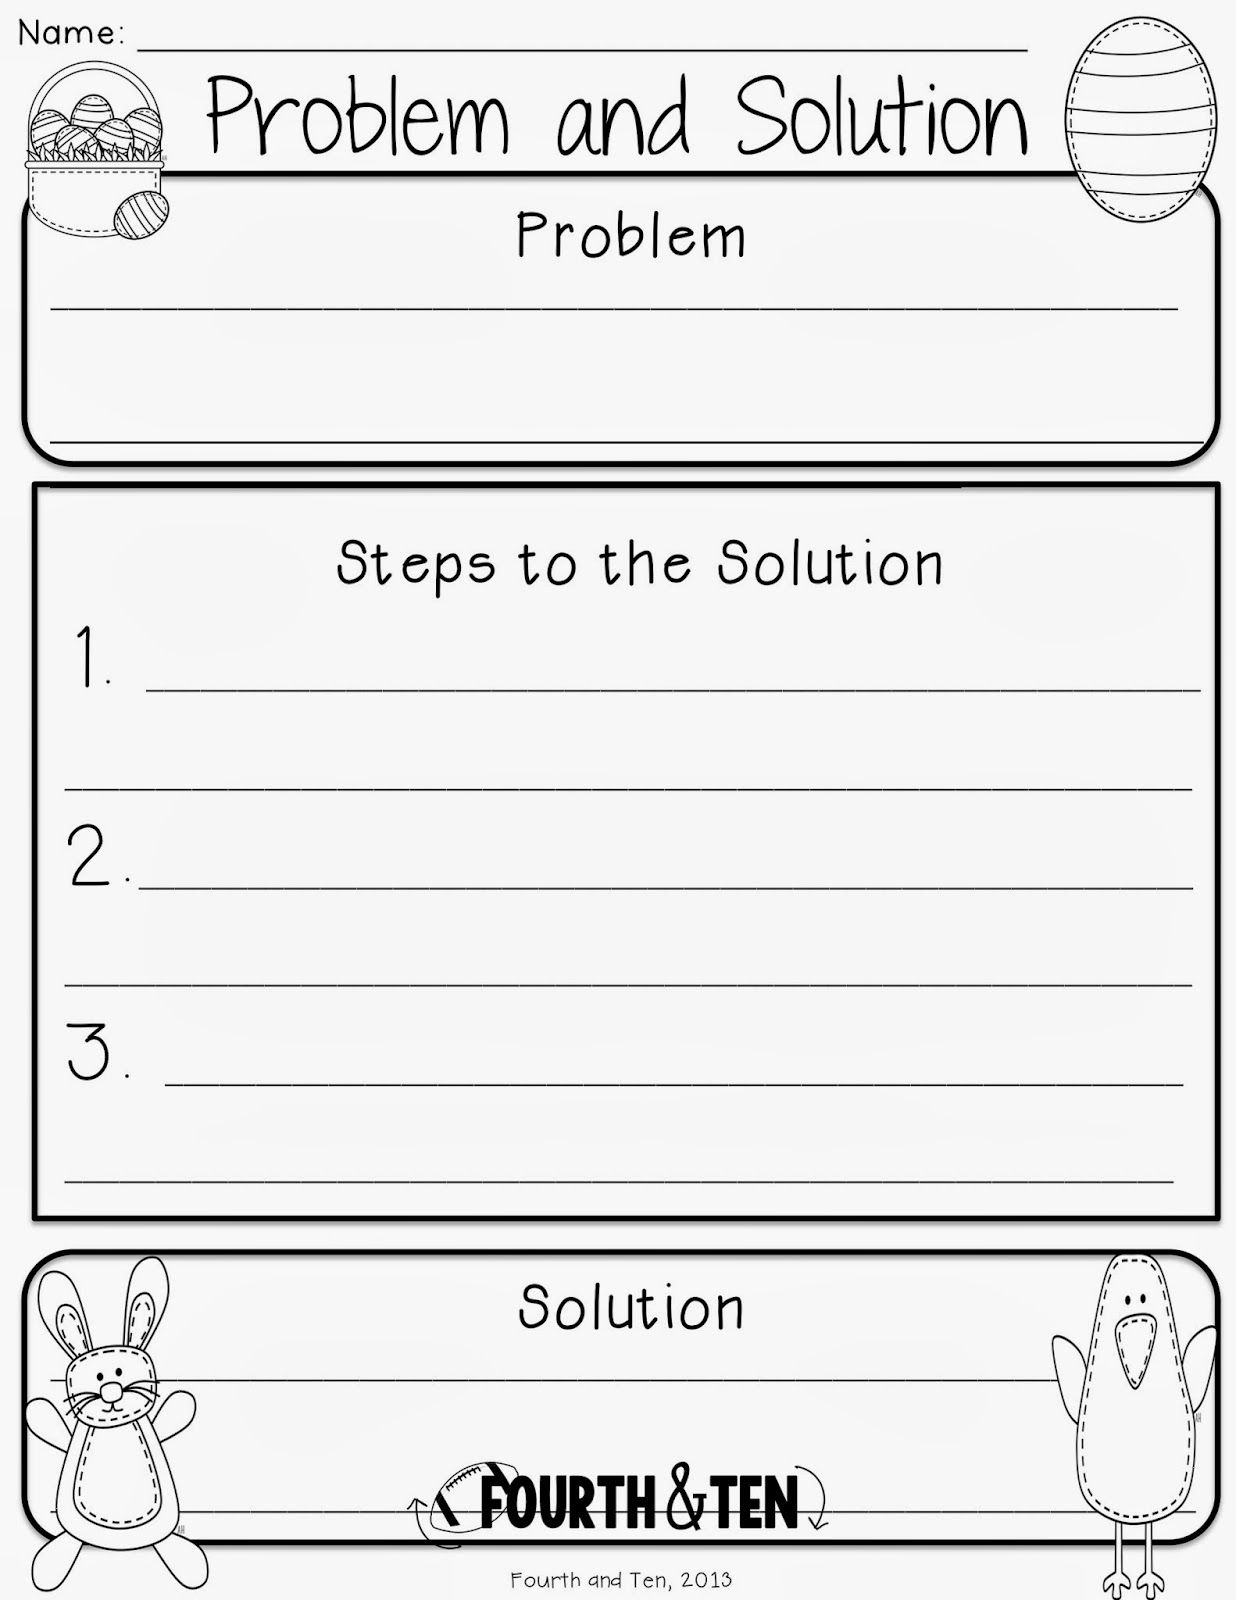 medium resolution of Easter Graphic Organizers - Reading/Writing - Problem Solution   Reading  worksheets